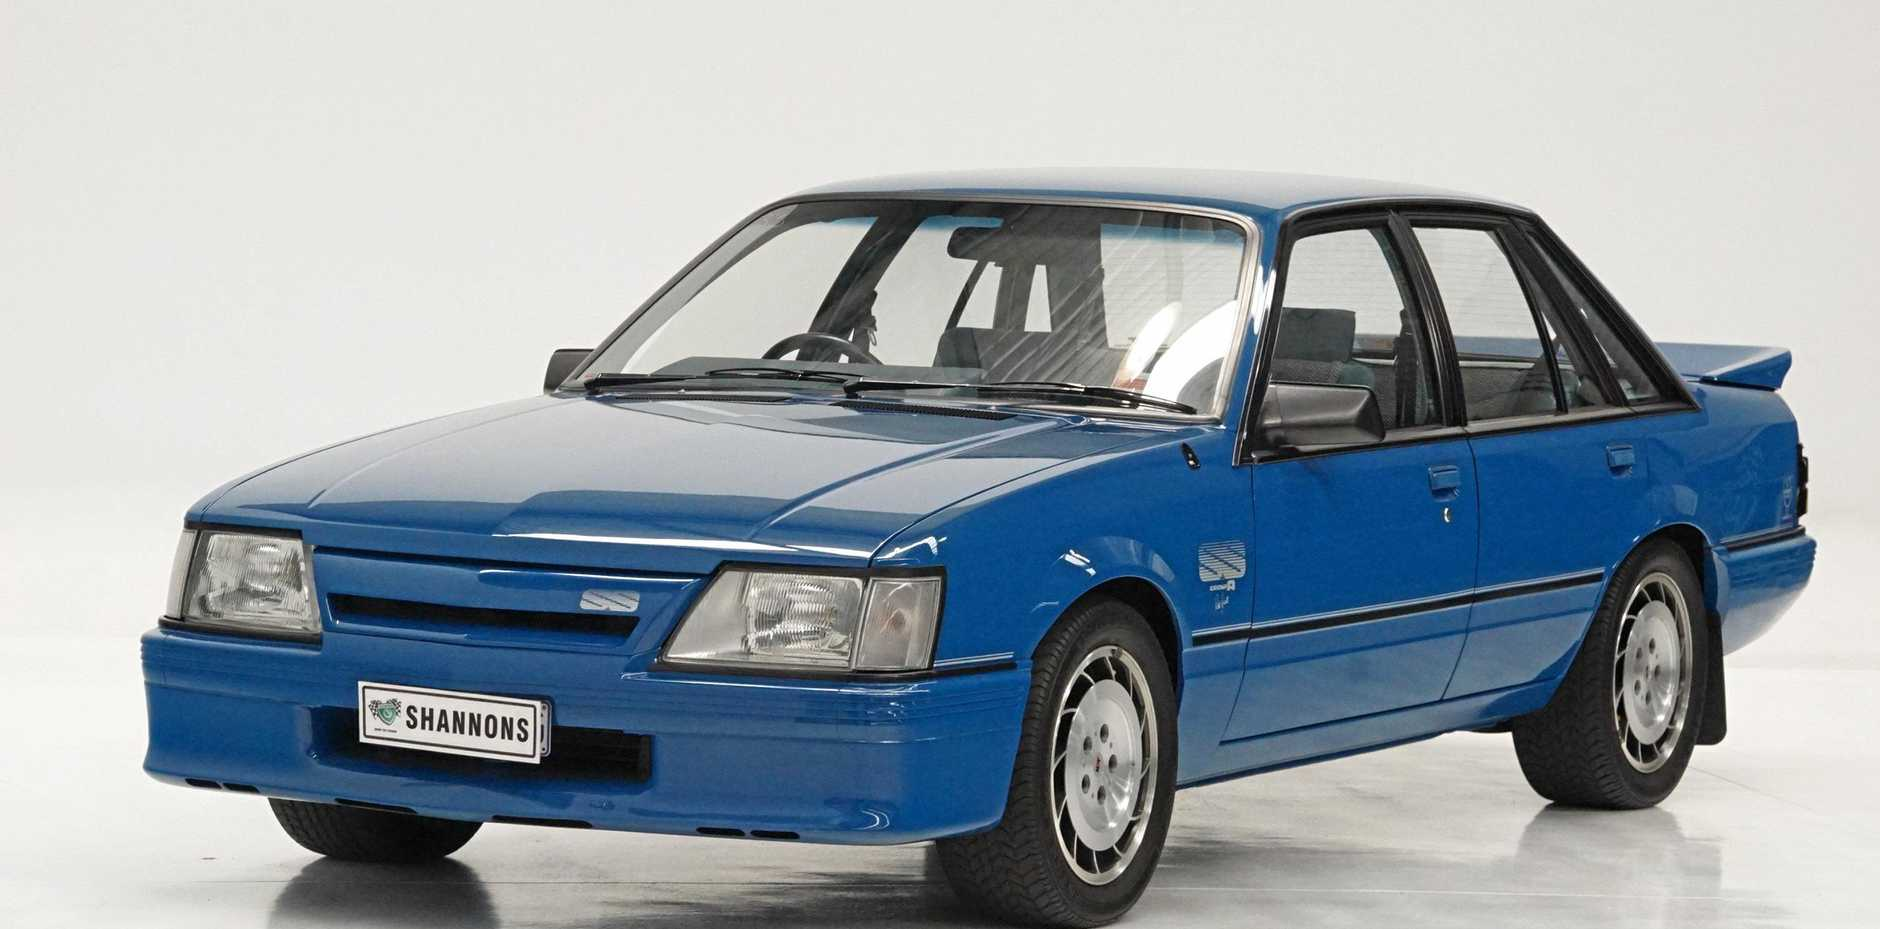 This stunning, time warp and low kilometre 1985 HDT VK SS Group A Commodore 'Blue Meanie' was the top selling vehicle of Shannons February 18 Melbourne Summer Auction, bringing $165,000.